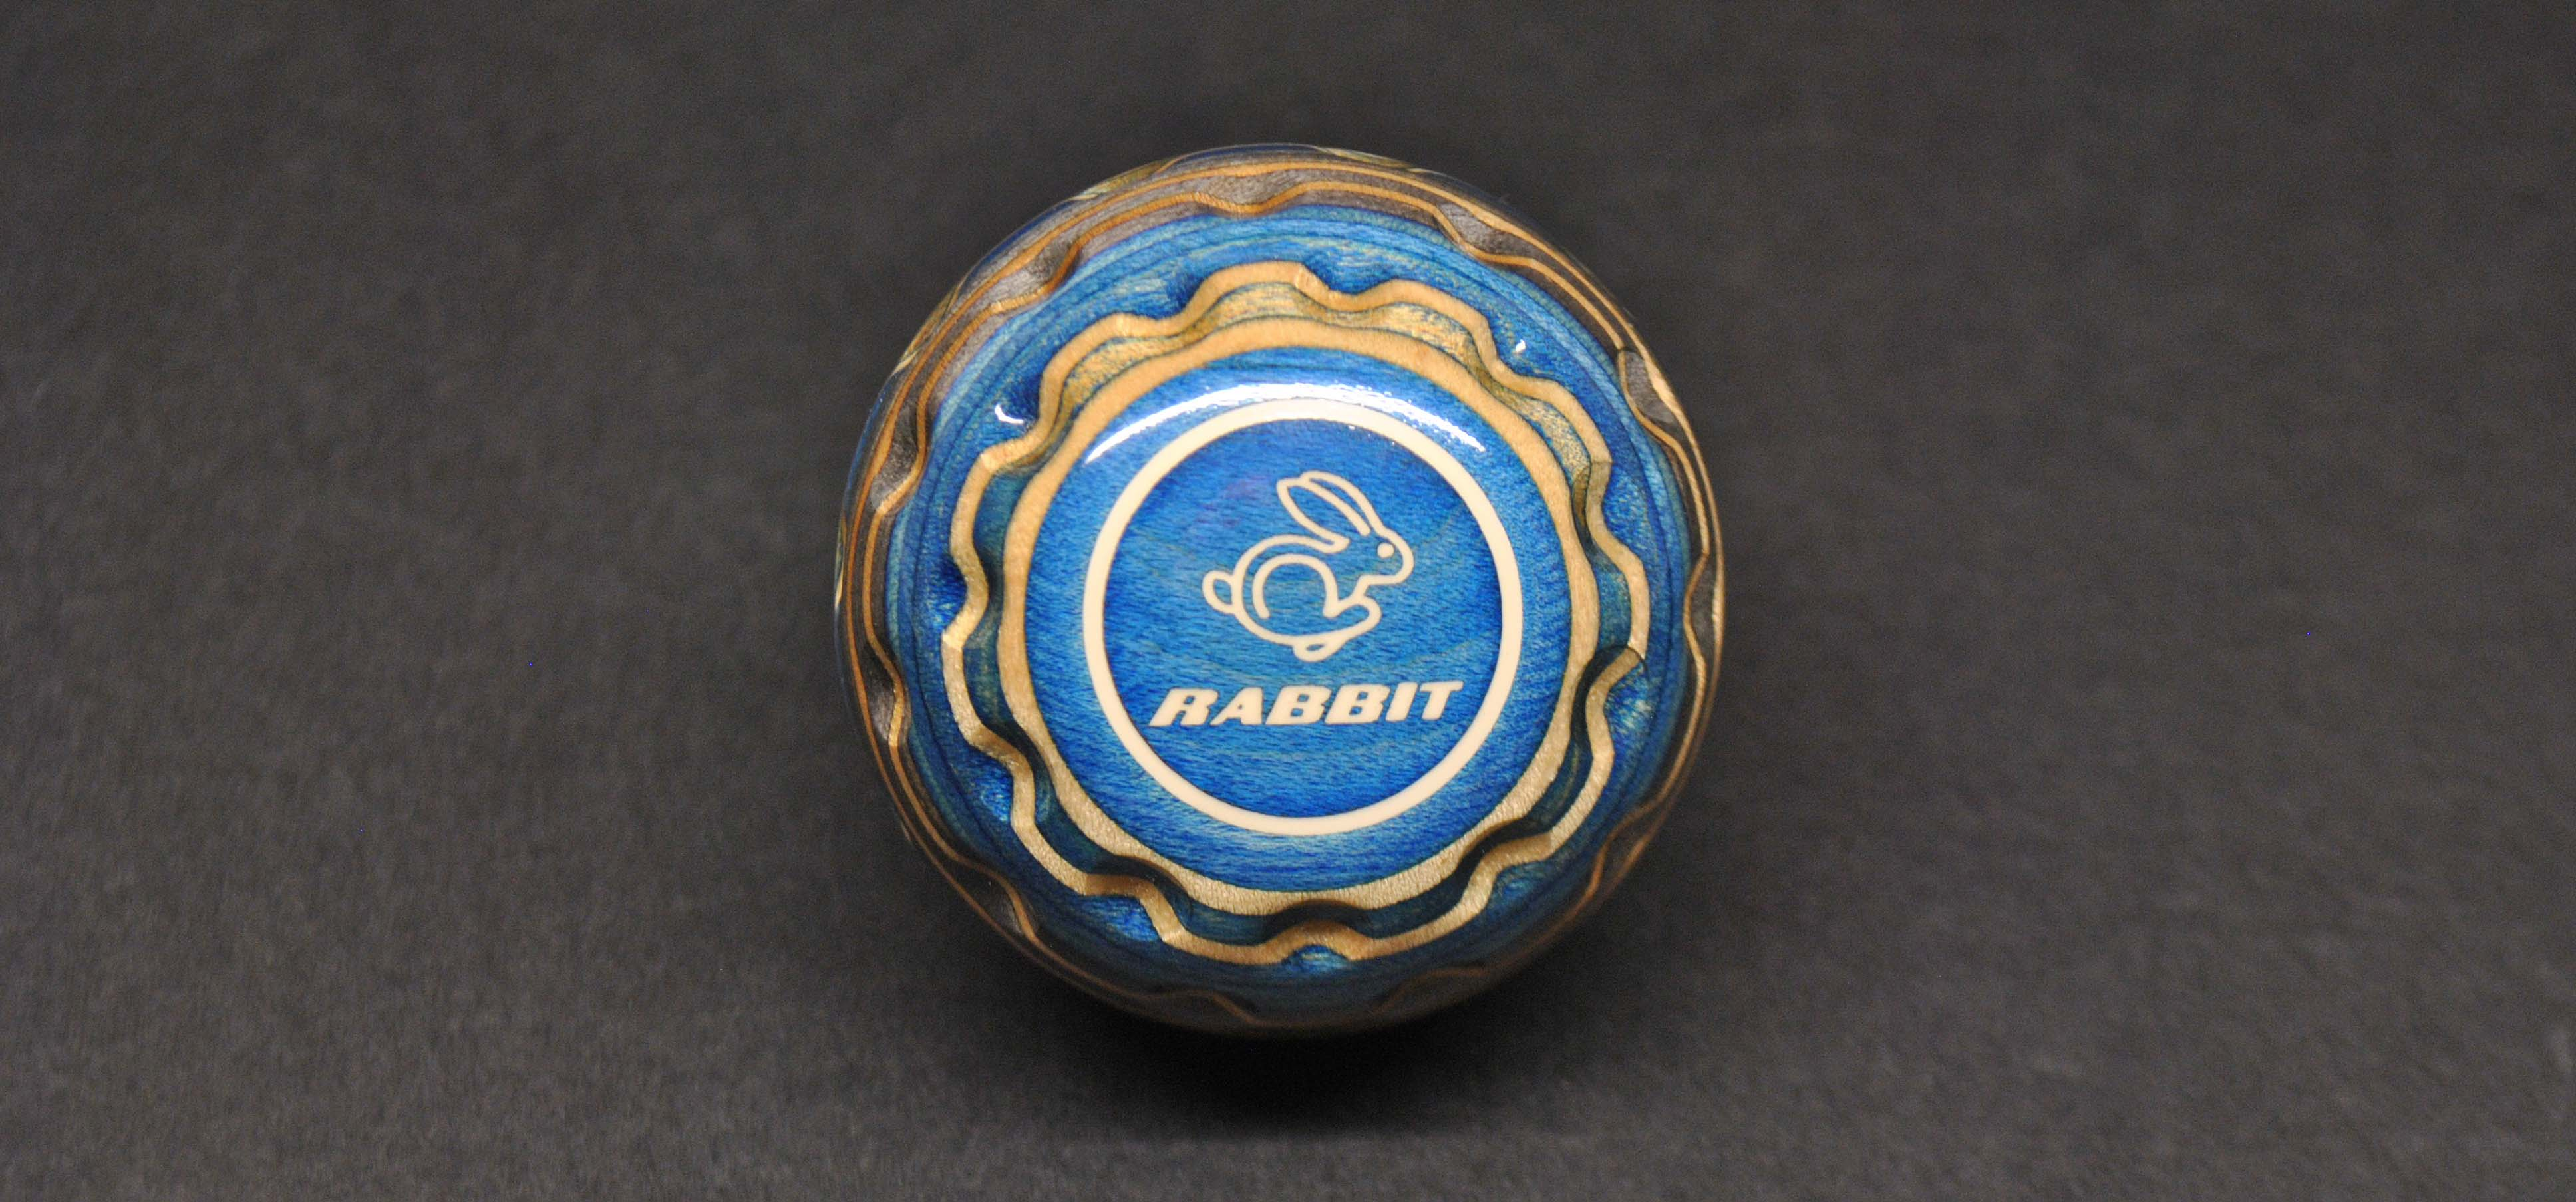 vw rabbit golf ball